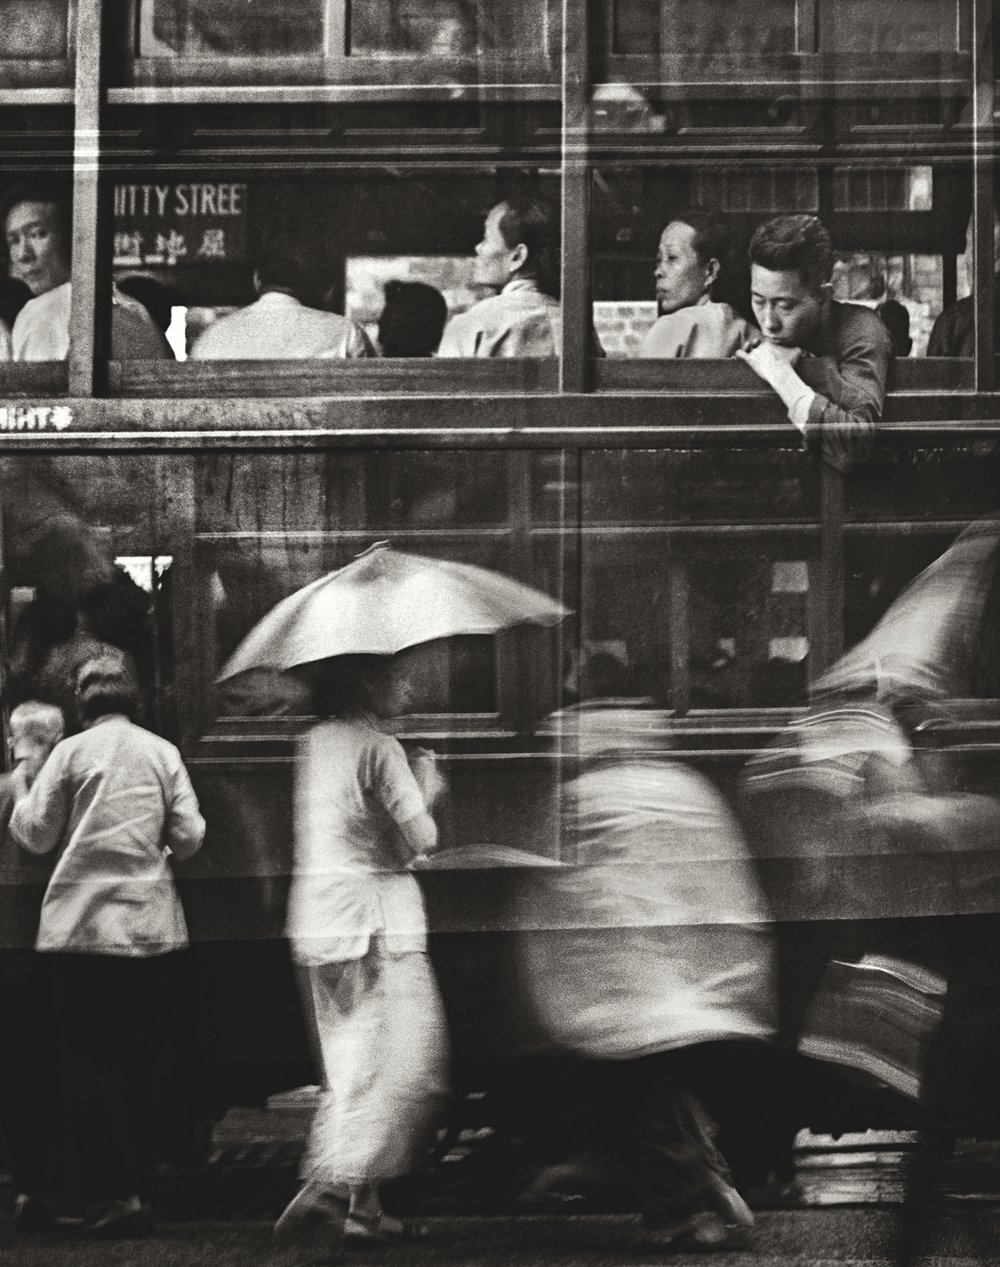 Fan Ho 'Whitty Street Diary(屈地街日記)' Hong Kong 1950s and 60s, courtesy of Blue Lotus Gallery